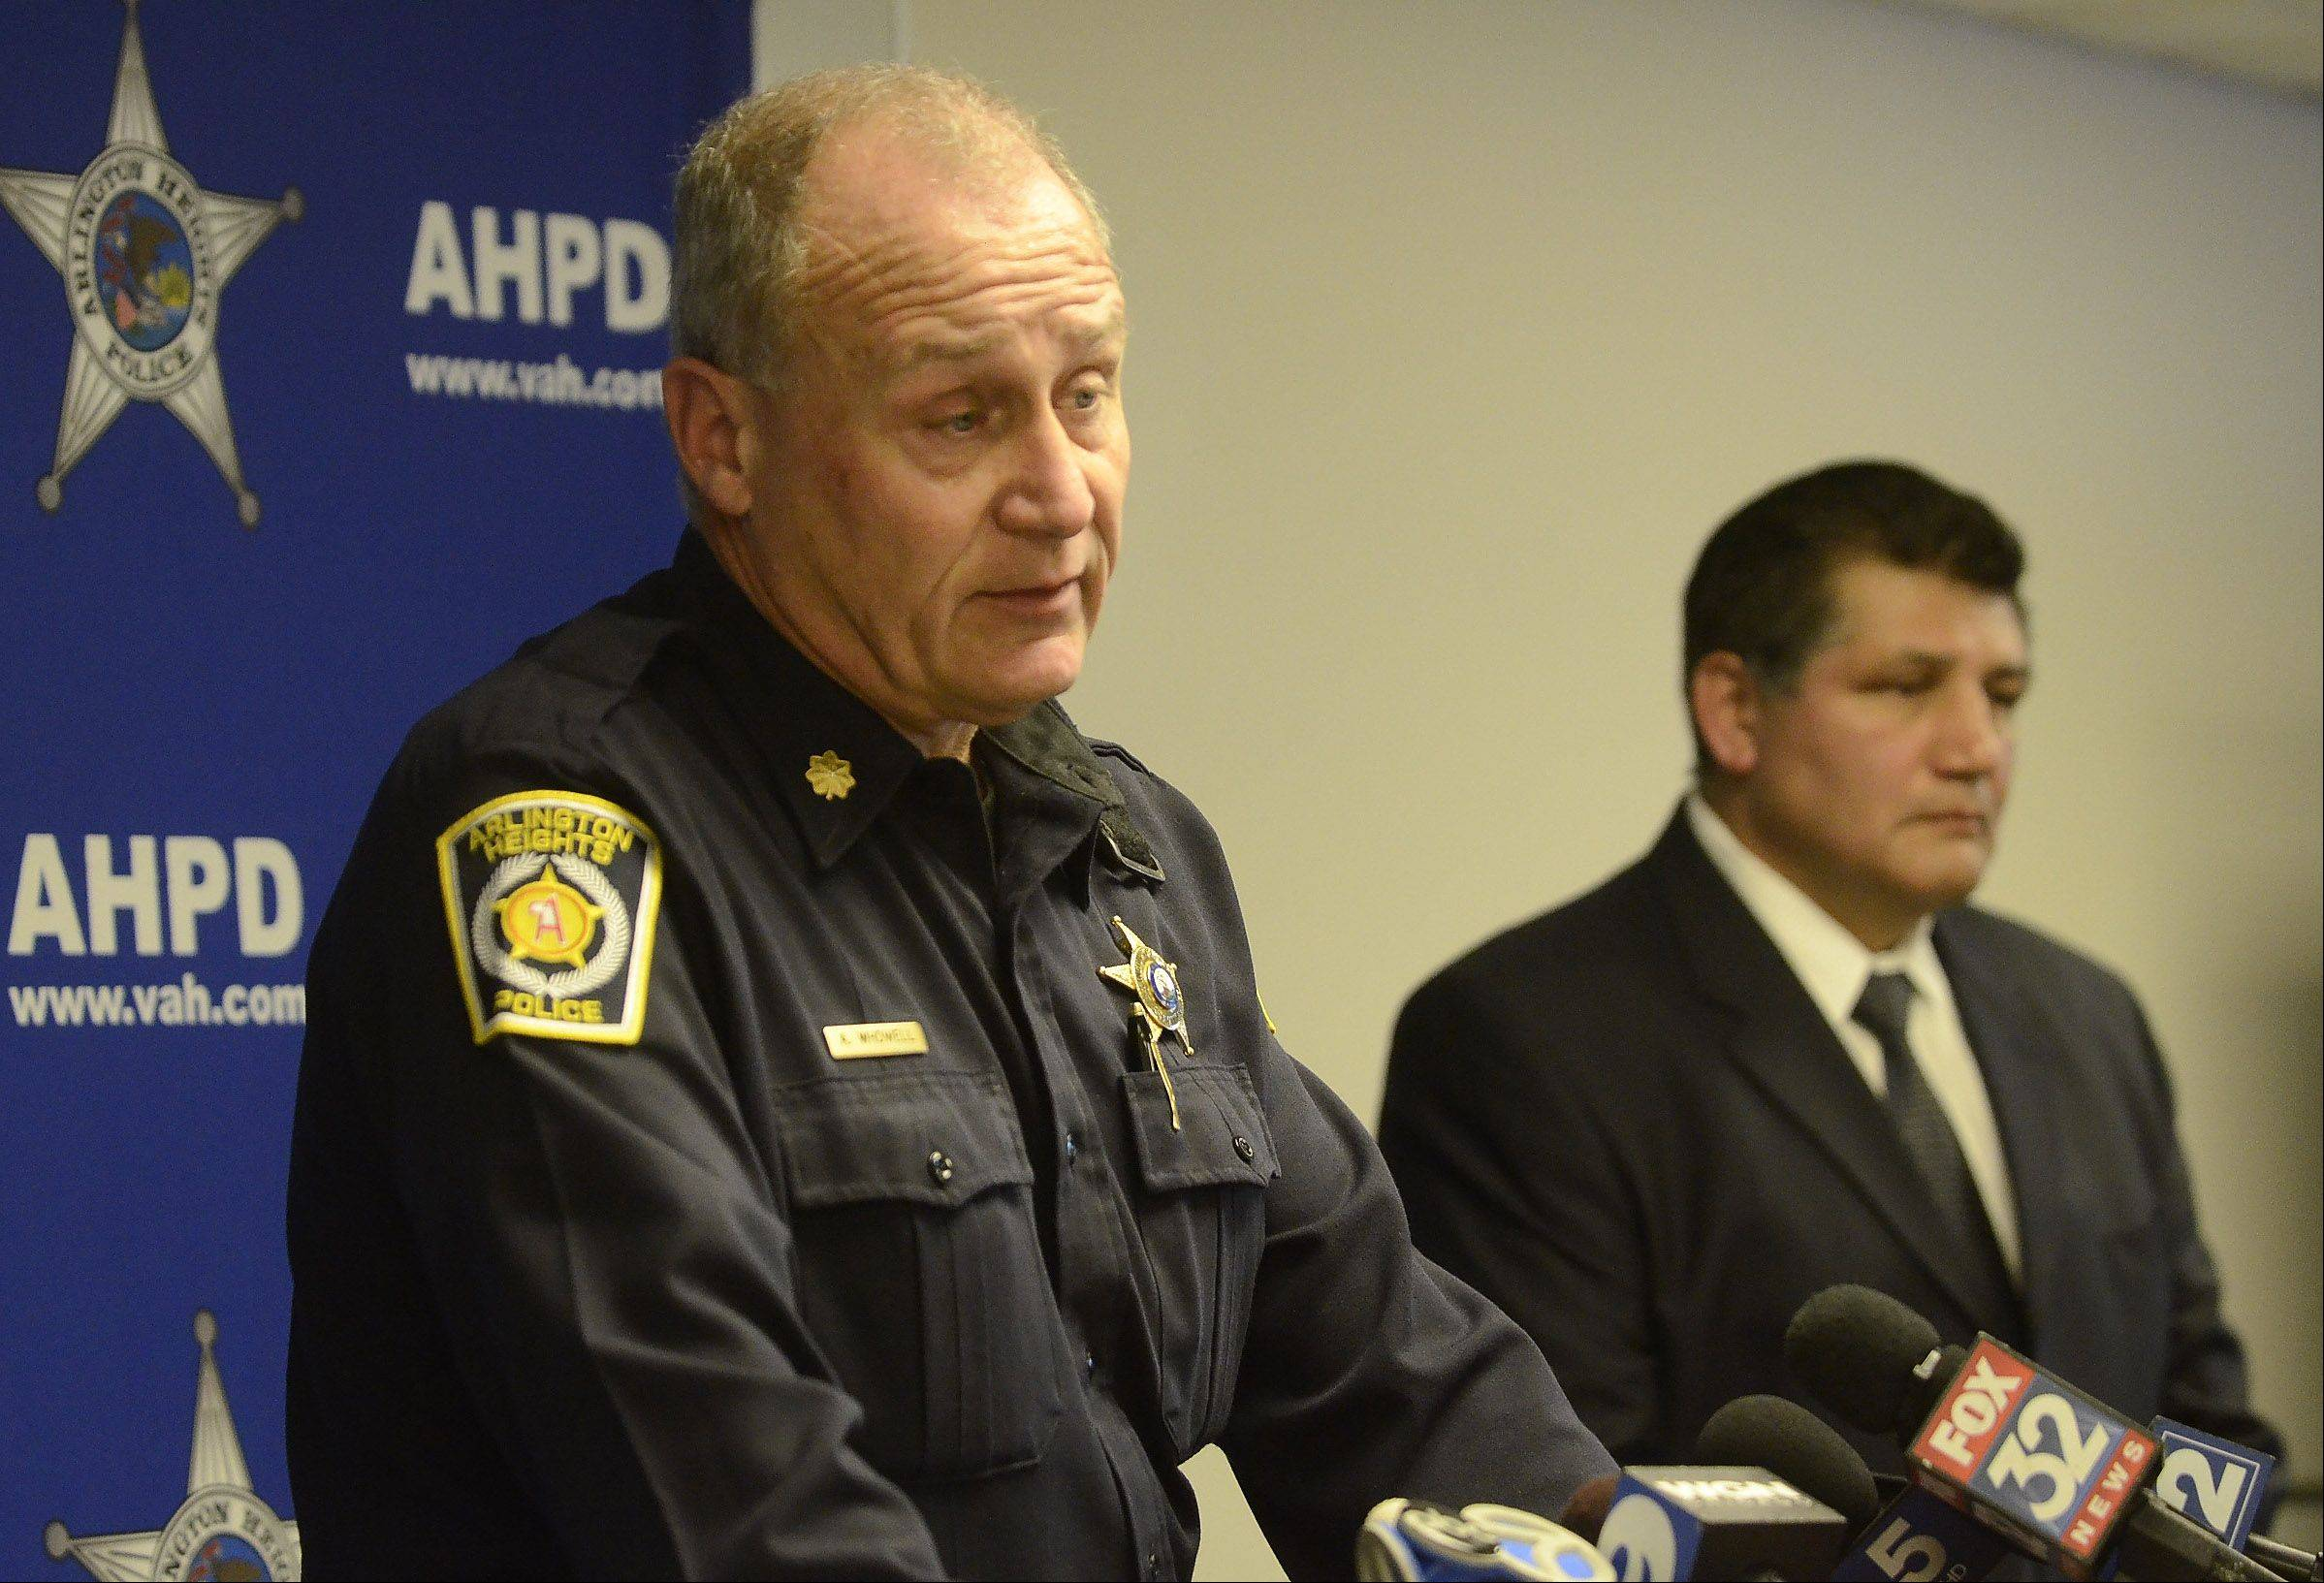 Commanders Andrew T. Whowell, left, and Mike Hernandez of the Arlington Heights Police Department address the media Friday.